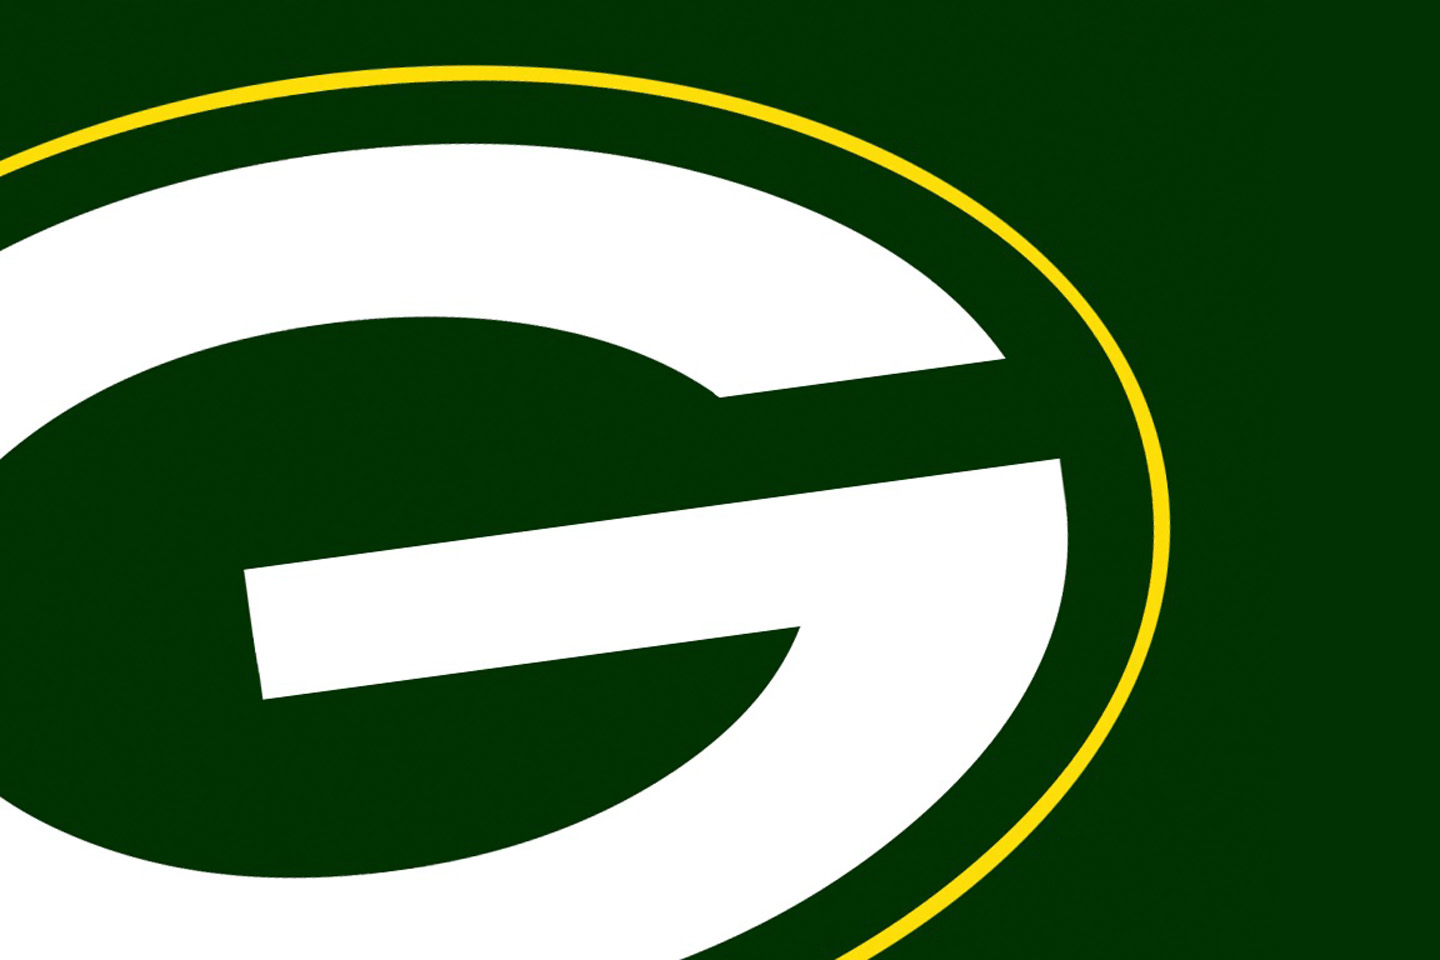 clip art for green bay packers - photo #10